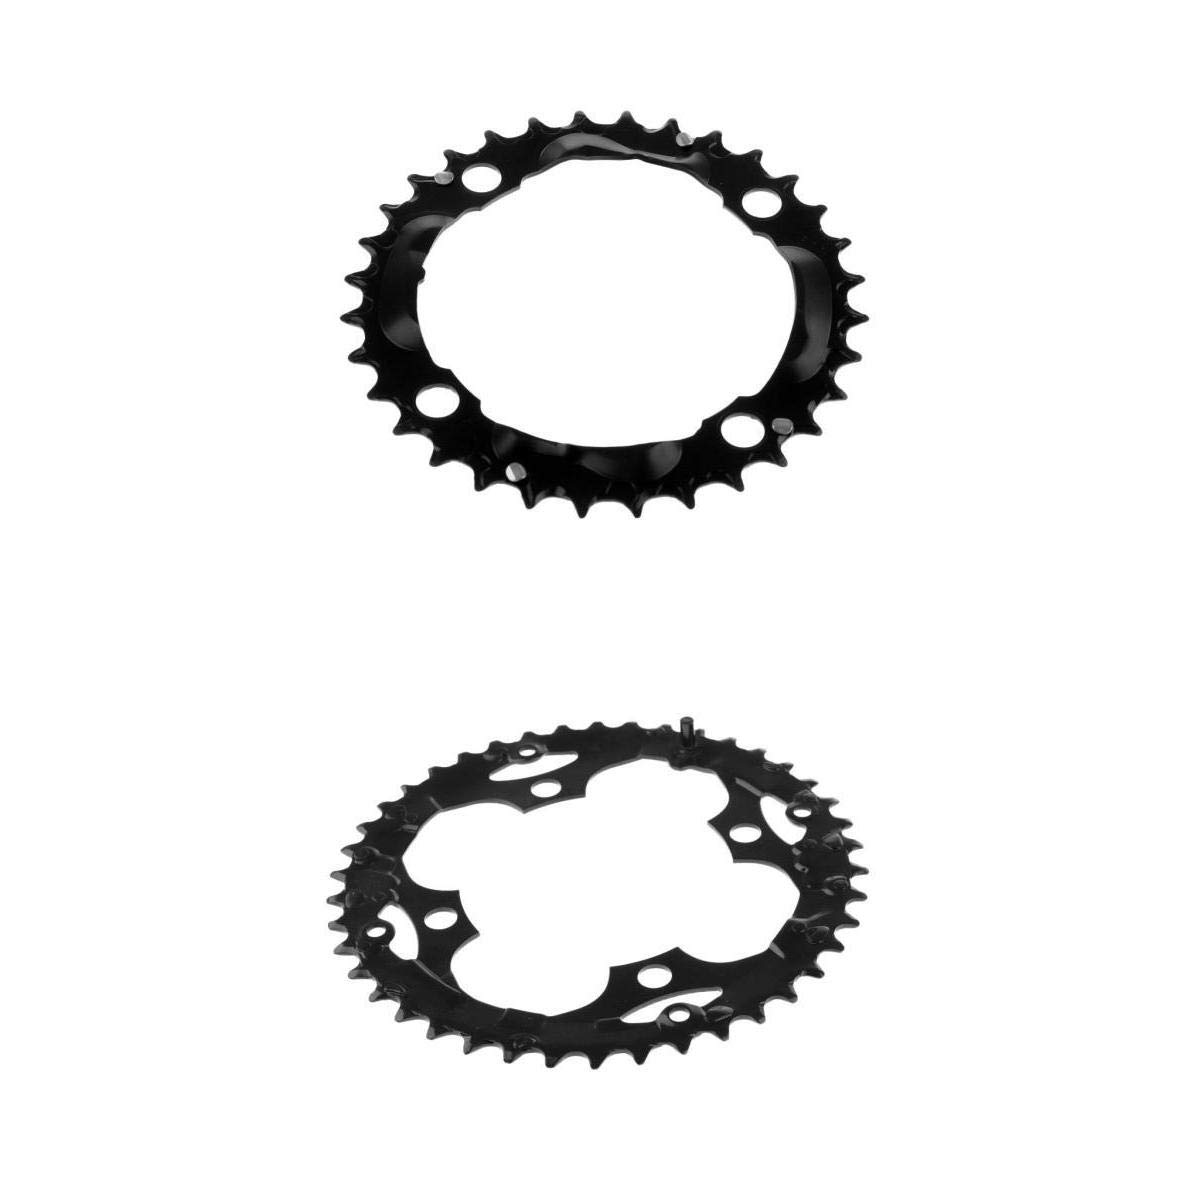 Magideal 2 Unids Road Bike Single Chainring 104mm 4 Pernos Bicicleta de Montaña Anillo de Cadena